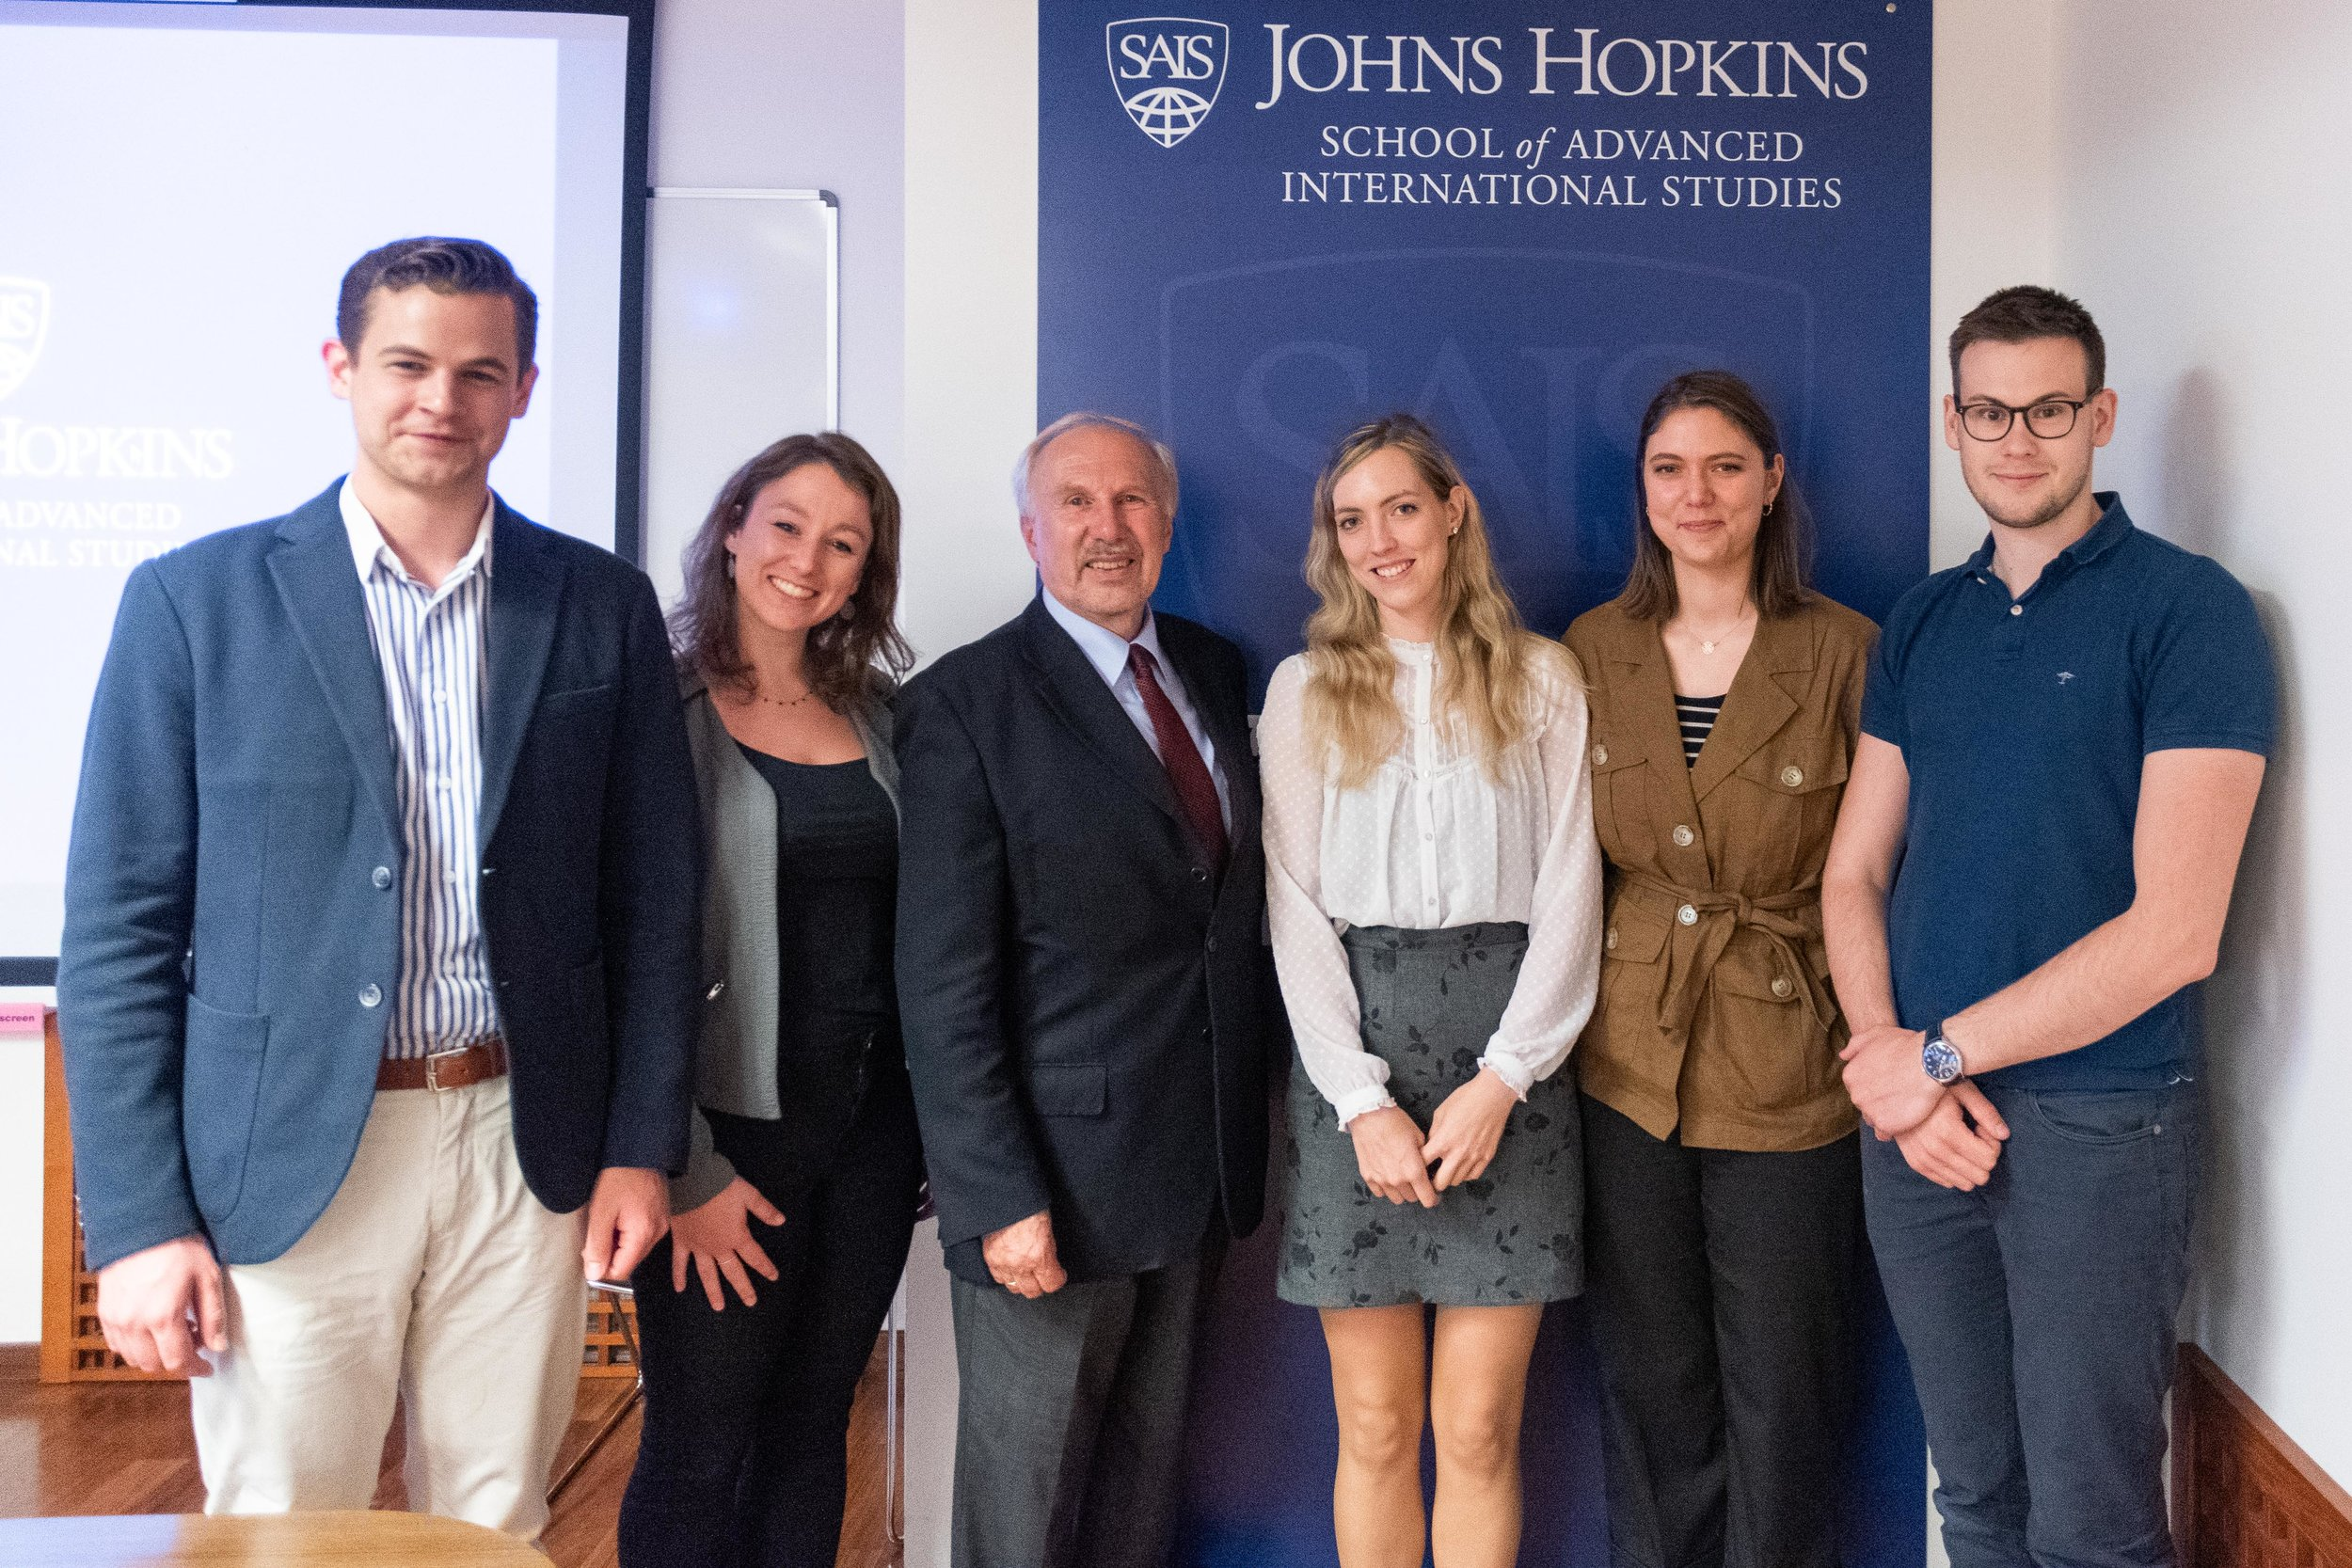 Pictured from left to right: Maximilian Buchleitner (MA '19), Christina Riegler (MAIA '19), Ewald Nowonty, Sabrina Zechmeister (MA '19), Line Relisieux (France/Austria, MAIA '19) and Johannes Gaechter (MA '19)